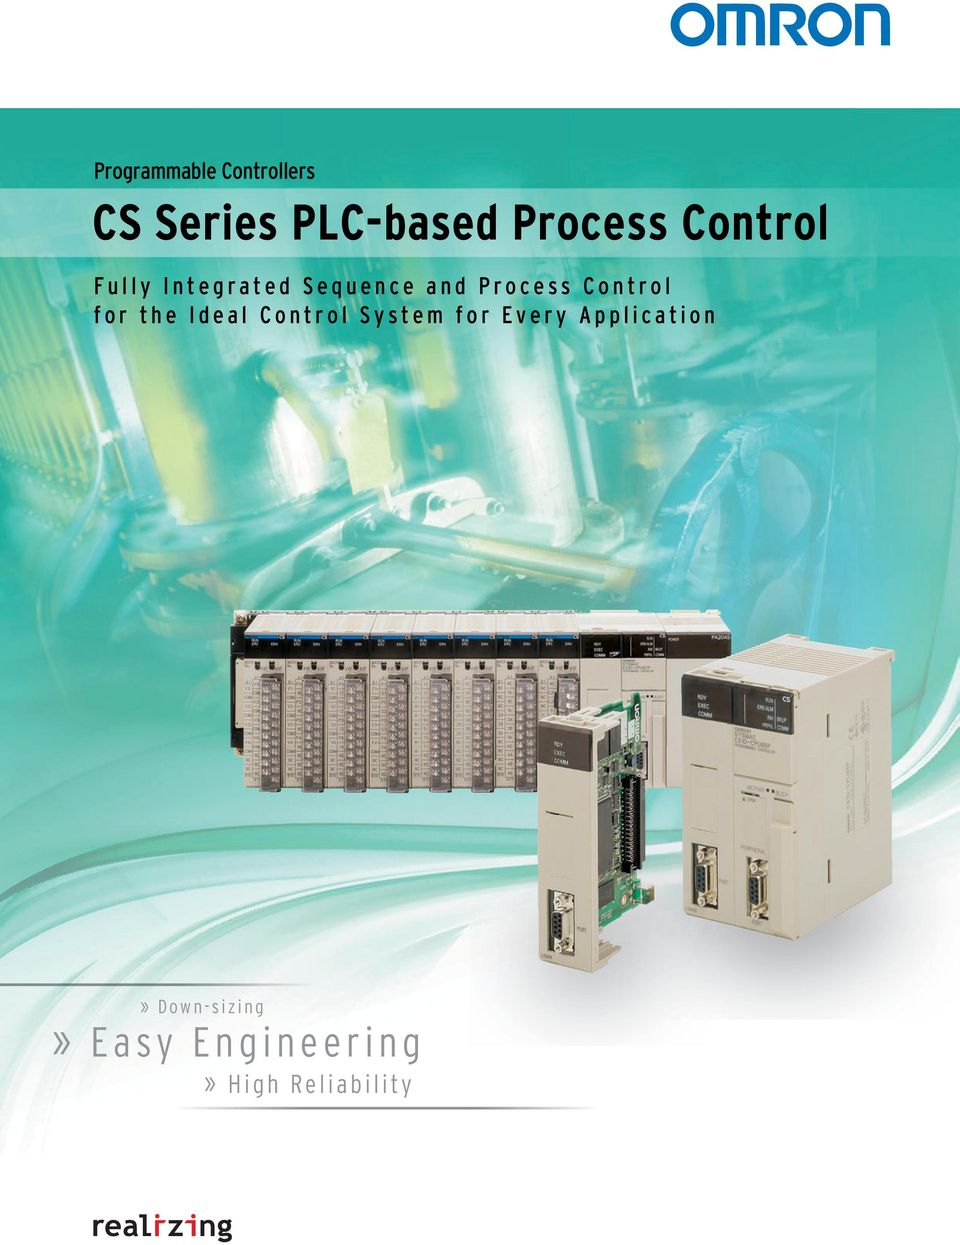 Process Control for the Ideal Control System for